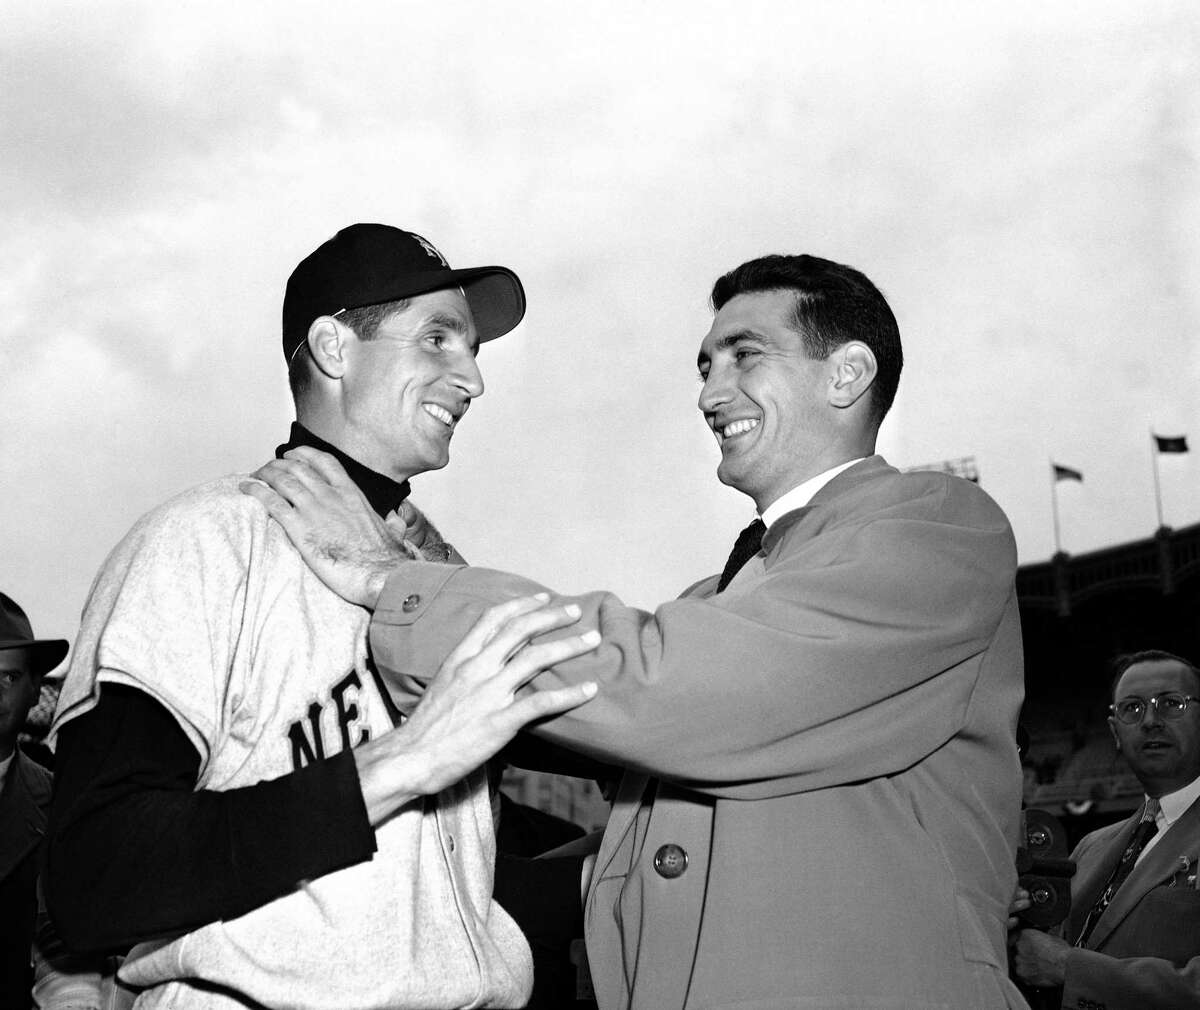 FILE - This Oct. 10, 1951, file photo shows New York Giants' Bobby Thomson, left, and Brooklyn Dodgers' Ralph Brance fooling around before the World Series at Yankee Srtadium in New York. Thomson's homer in the ninth inning on Oct. 3 off Branca, put the Giants into the World Series against the Yankees. Famed home run hitter Bobby Thomson died Monday night, Aug. 16, 2010. He was 86. (AP Photo/File)